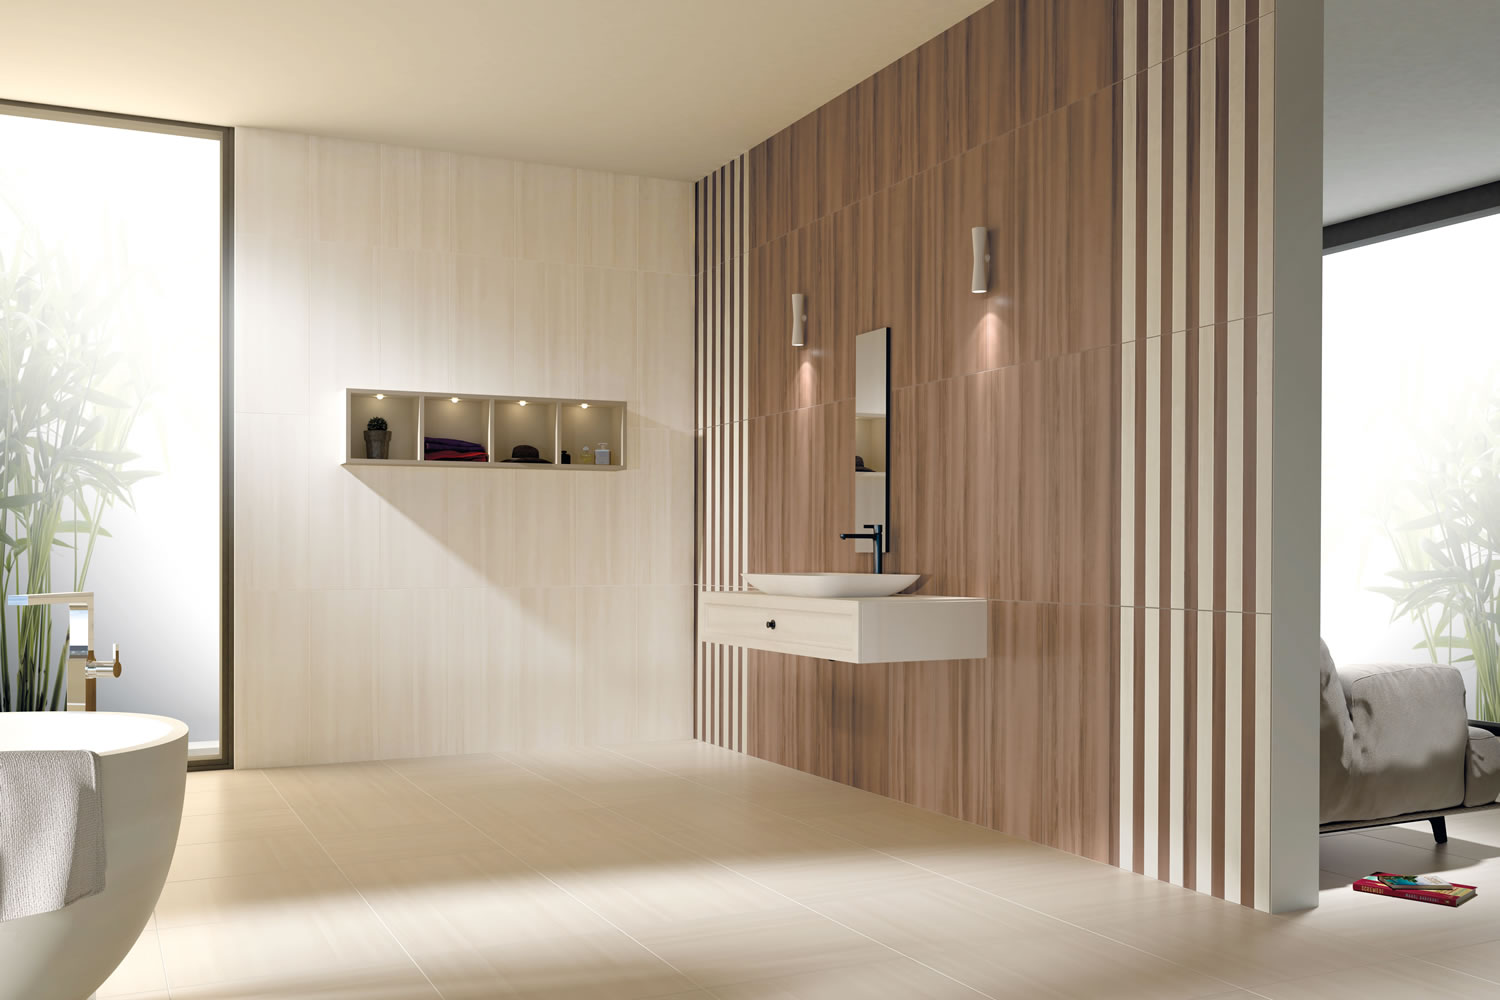 Cahit Necipoglu Bathrooms in Nicosia